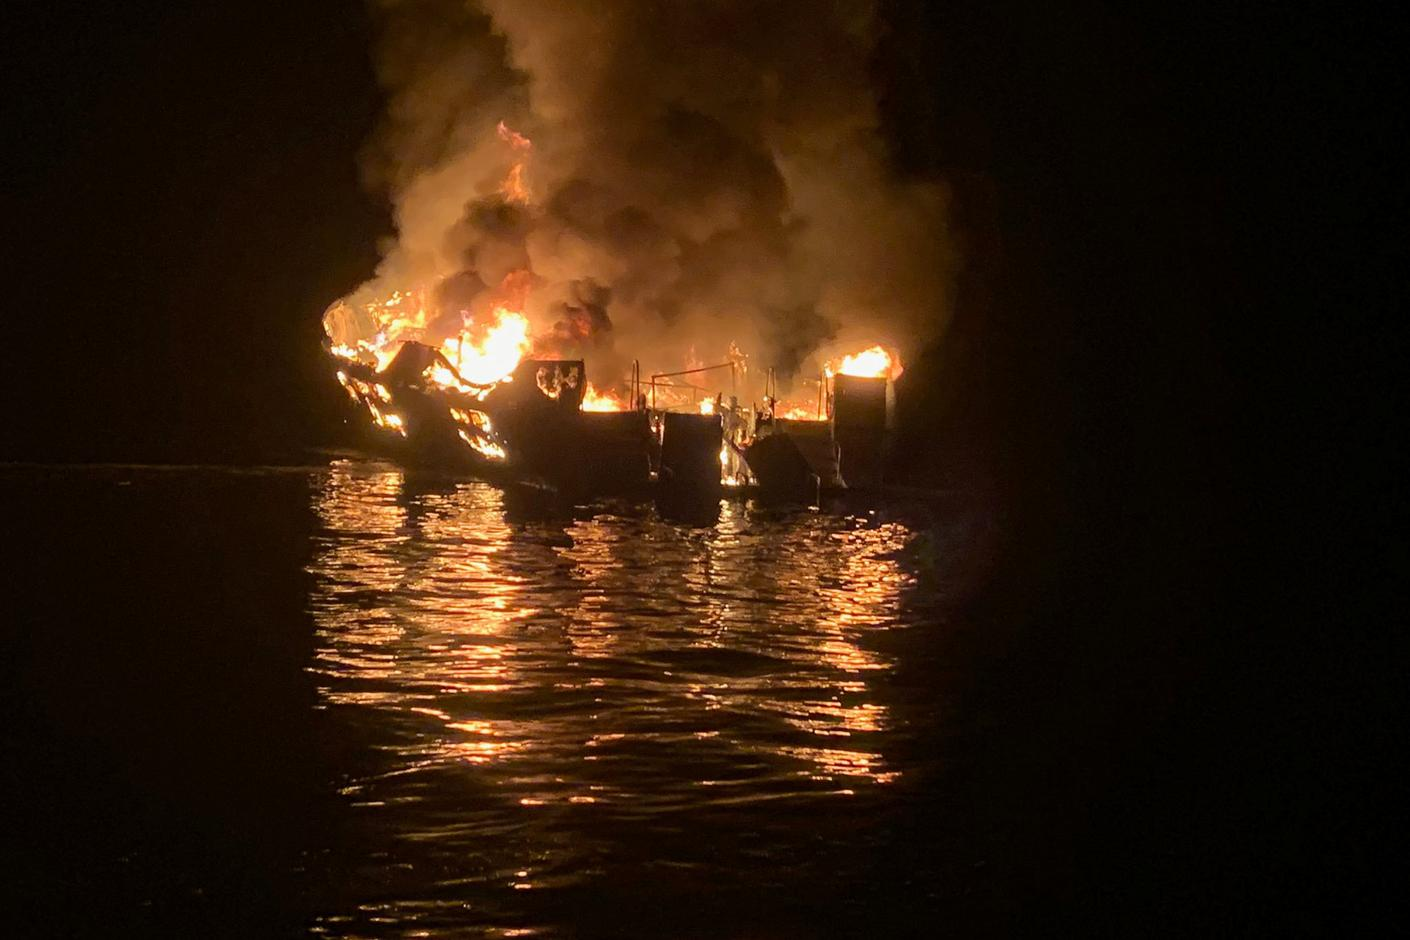 At least eight dead from California boat fire, 26 missing